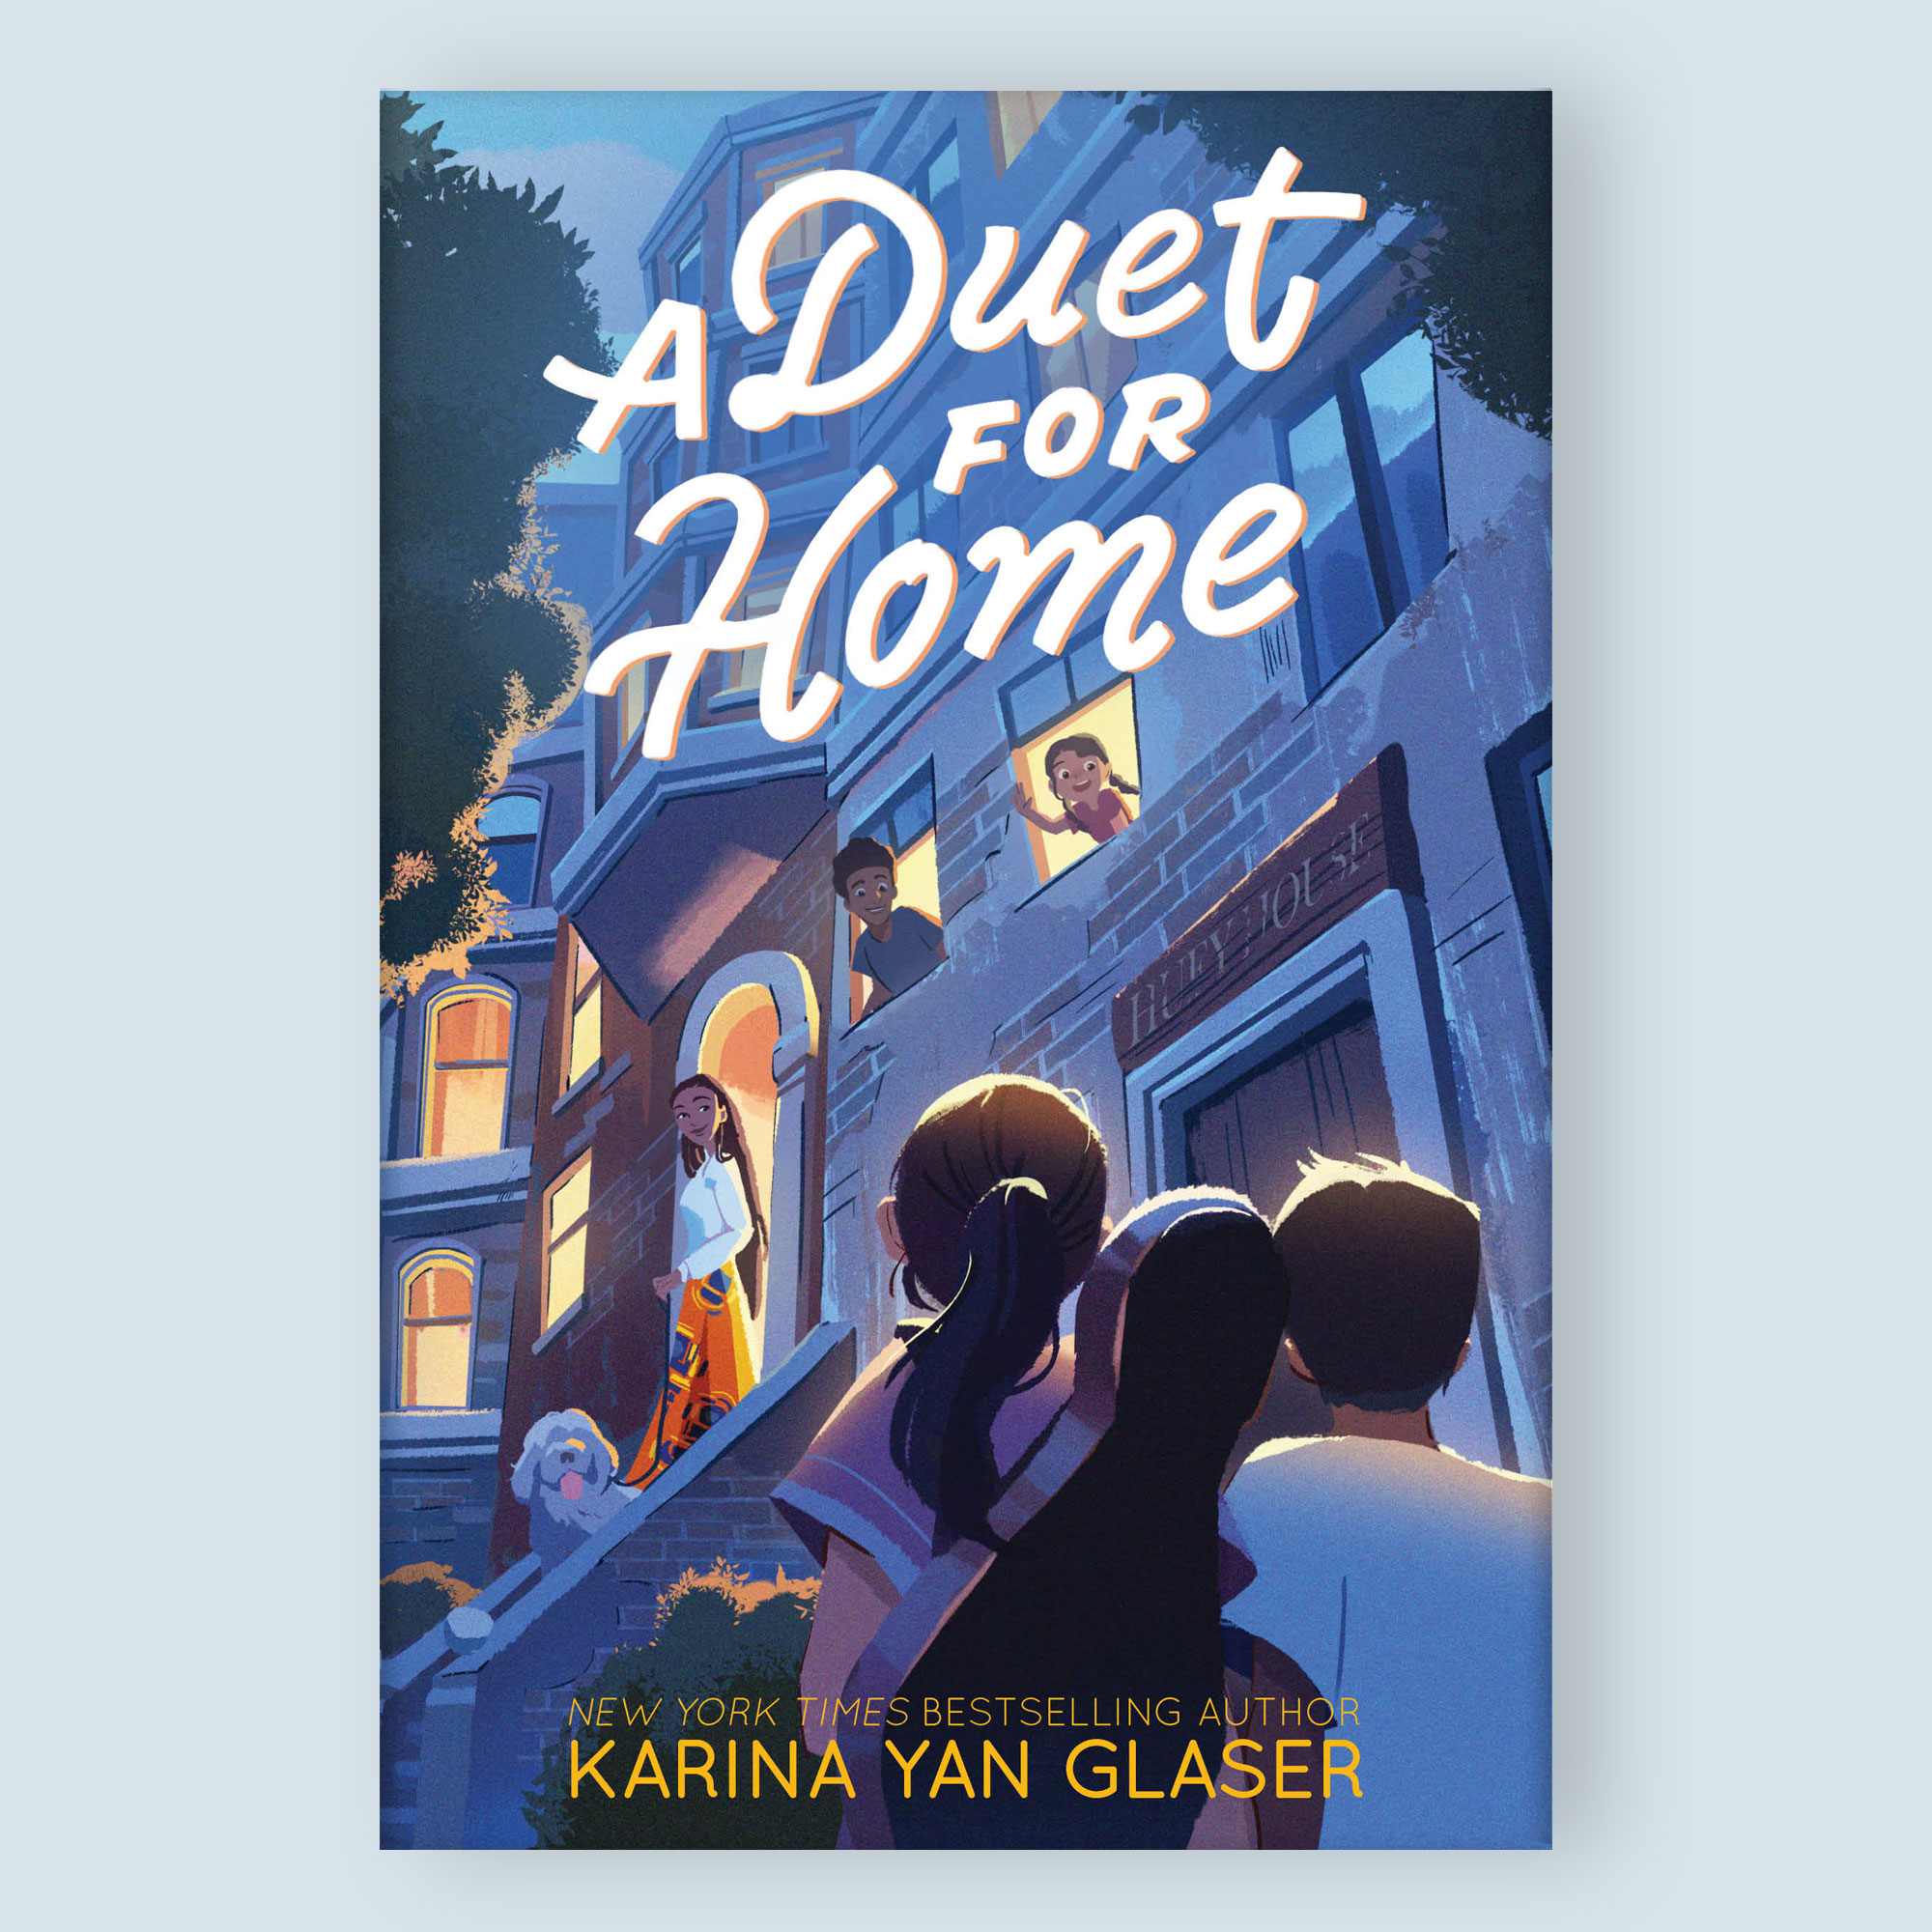 A Duet for Home